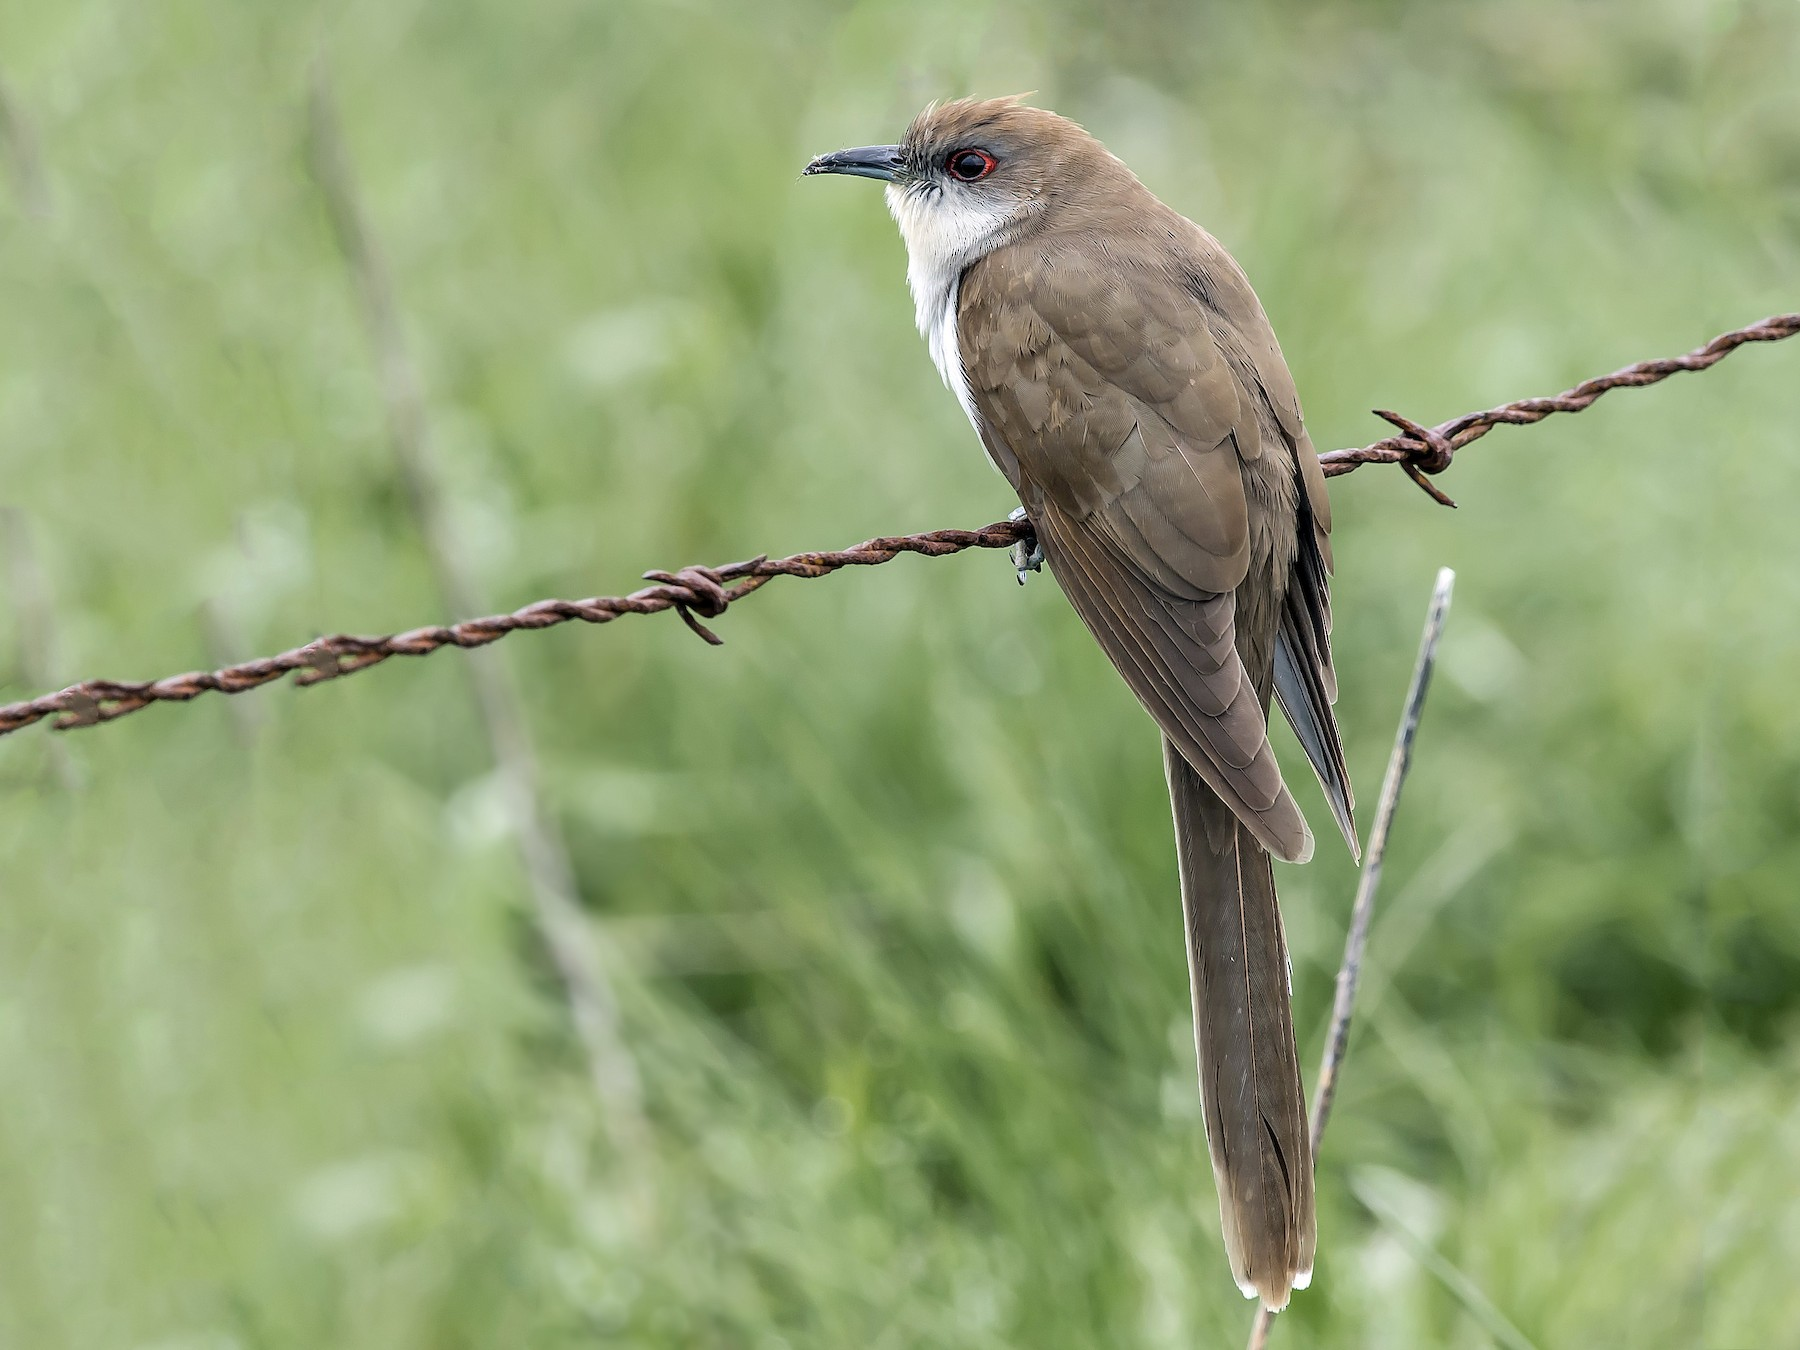 Black-billed Cuckoo - Ronnie d'Entremont